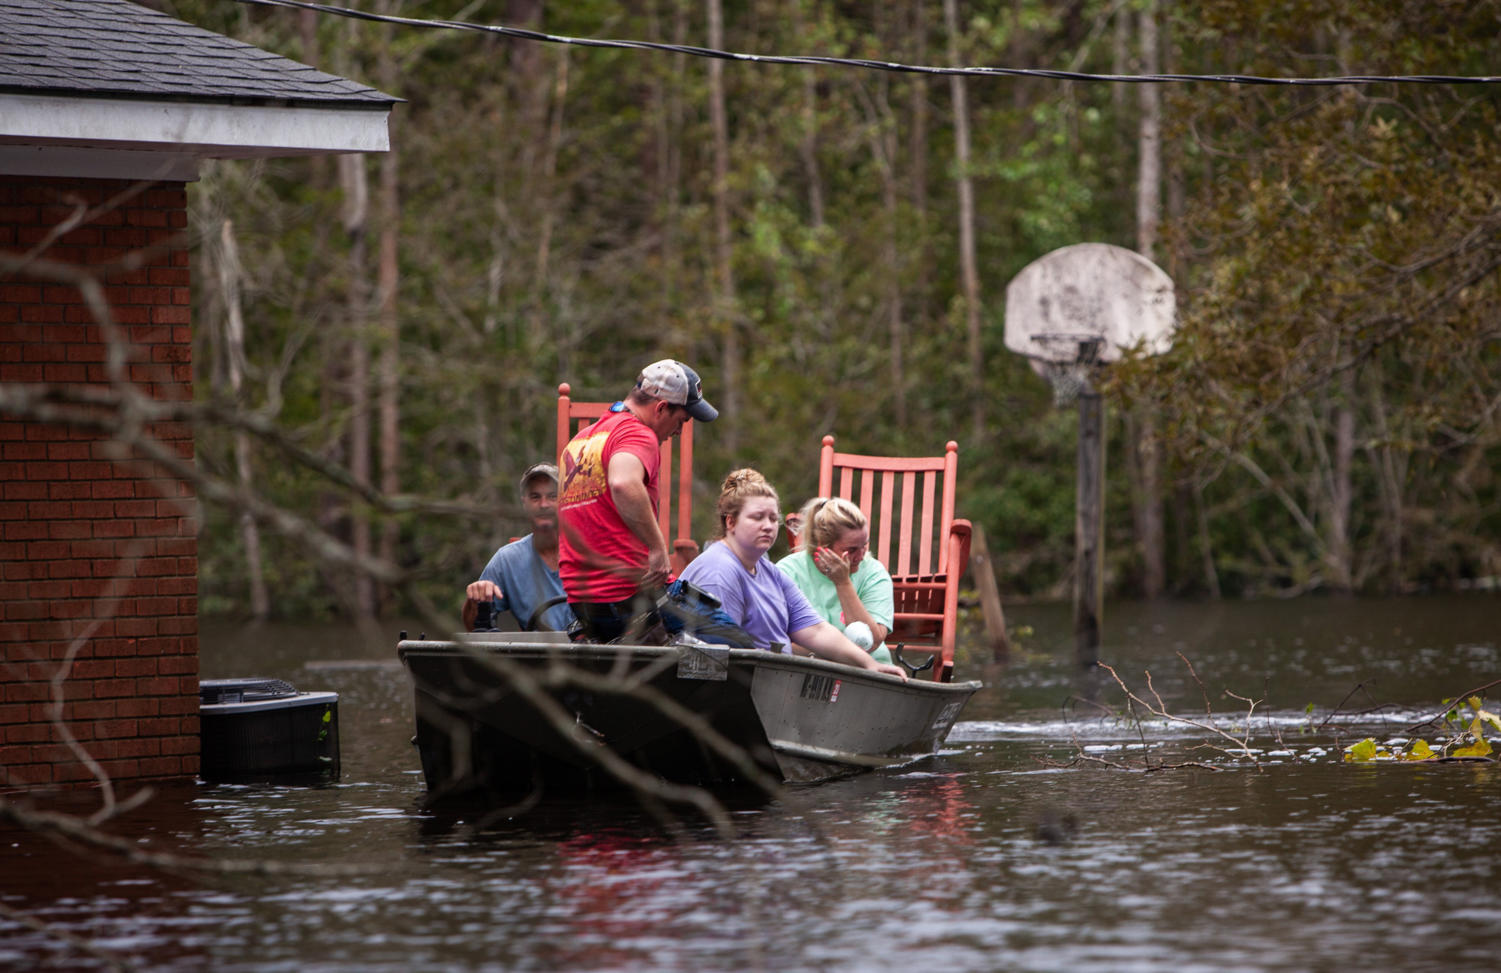 From left, Mike Haddock, 48, Justin Humphrey, 24, Katlyn Humphrey, 19, and Michelle Haddock, 45, remove possessions from the Haddocks' flooded home using a jon boat on Monday, Sept. 17, 2018 in Trenton, N.C. following Hurricane Florence. (Travis Long/Raleigh News & Observer/TNS)